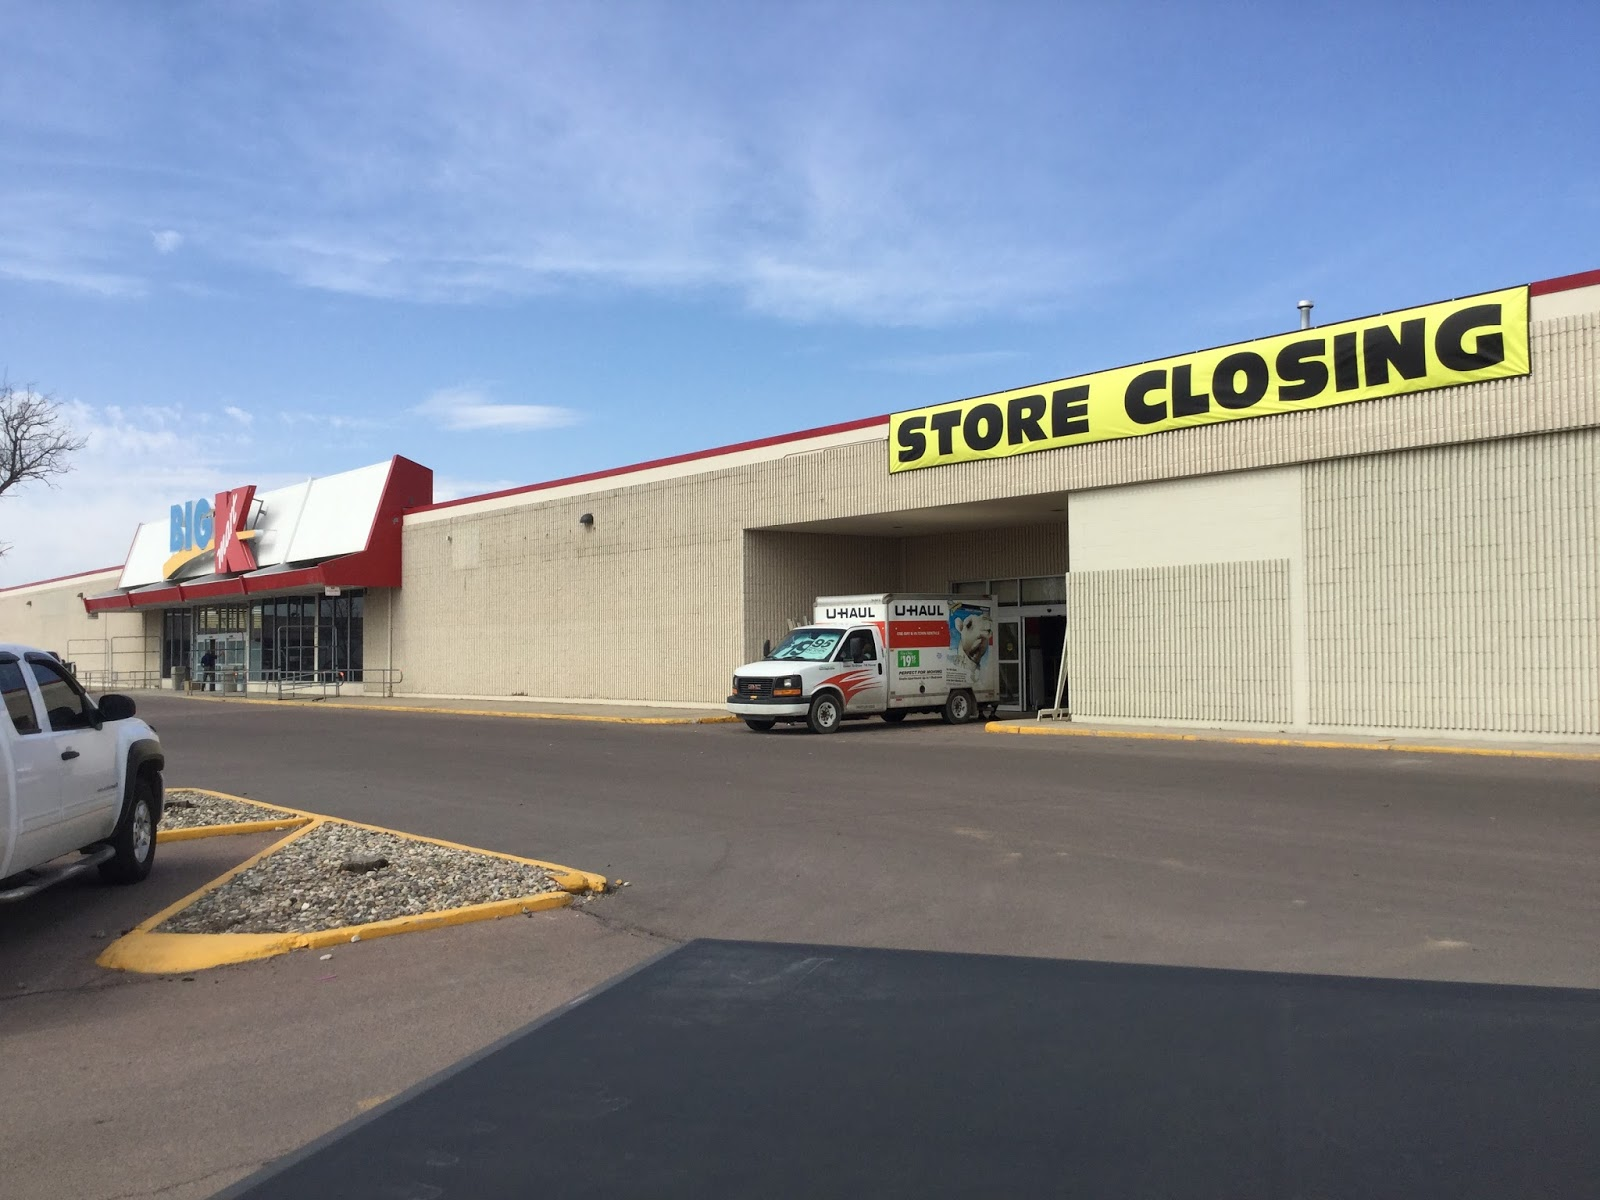 How Kmart became not OKmart | Prairie Perspective